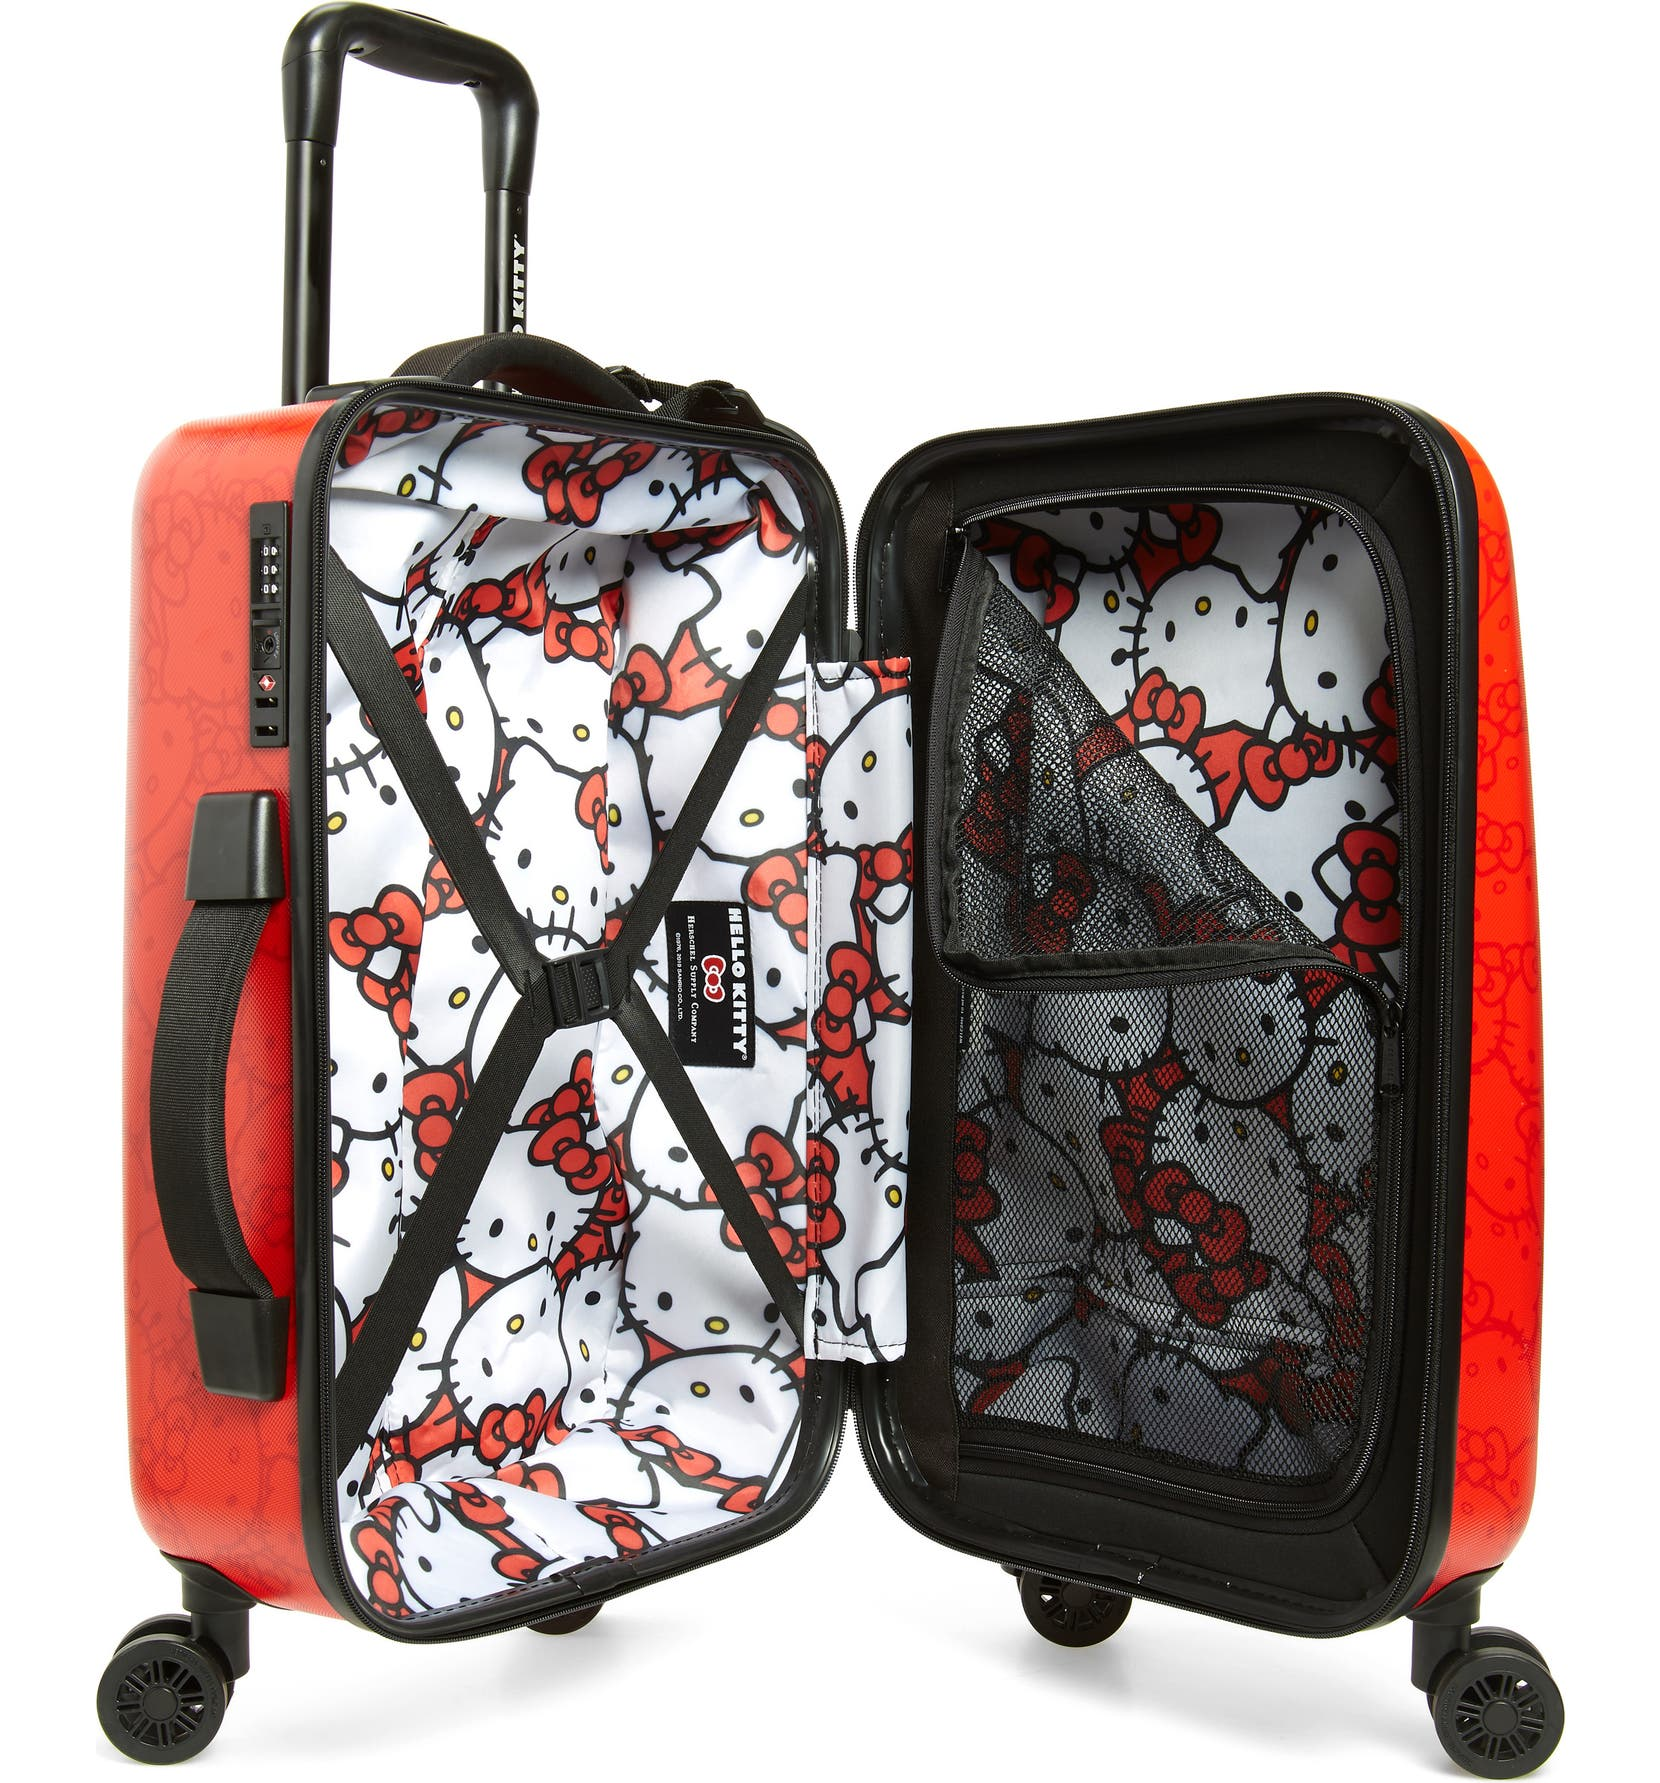 b318b7fa6 Herschel Supply Co. x Hello Kitty Trade Small 23-Inch Rolling Suitcase |  Nordstrom